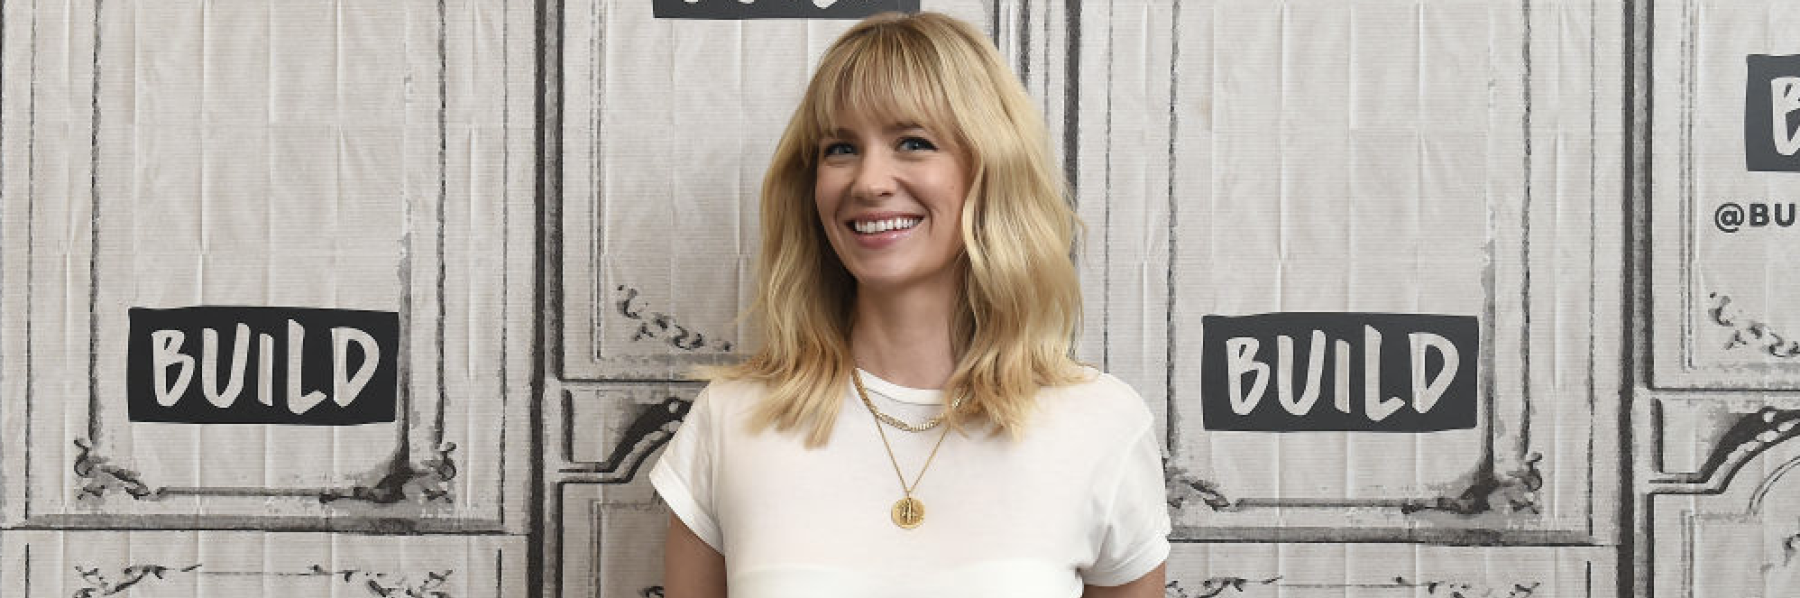 NEW YORK, NY - APRIL 12: Actress January Jones visits Build Series to discuss the FOX comedy 'The Last Man On Earth at Build Studio on April 12, 2018 in New York City. (Photo by Ilya S. Savenok/Getty Images)